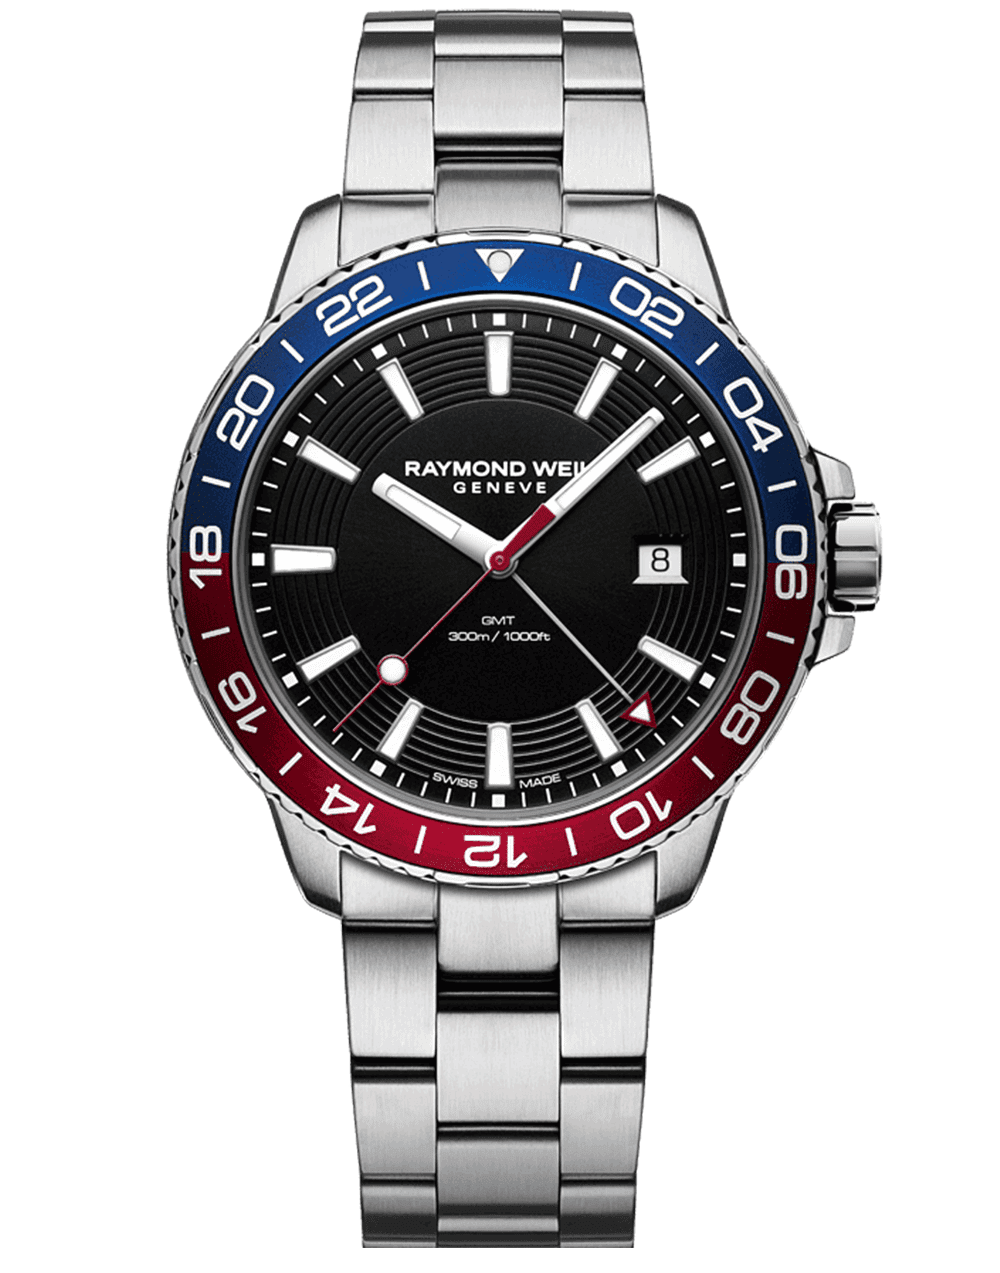 RAYMOND WEIL Men's Tango Diver Luxury Swiss Watch